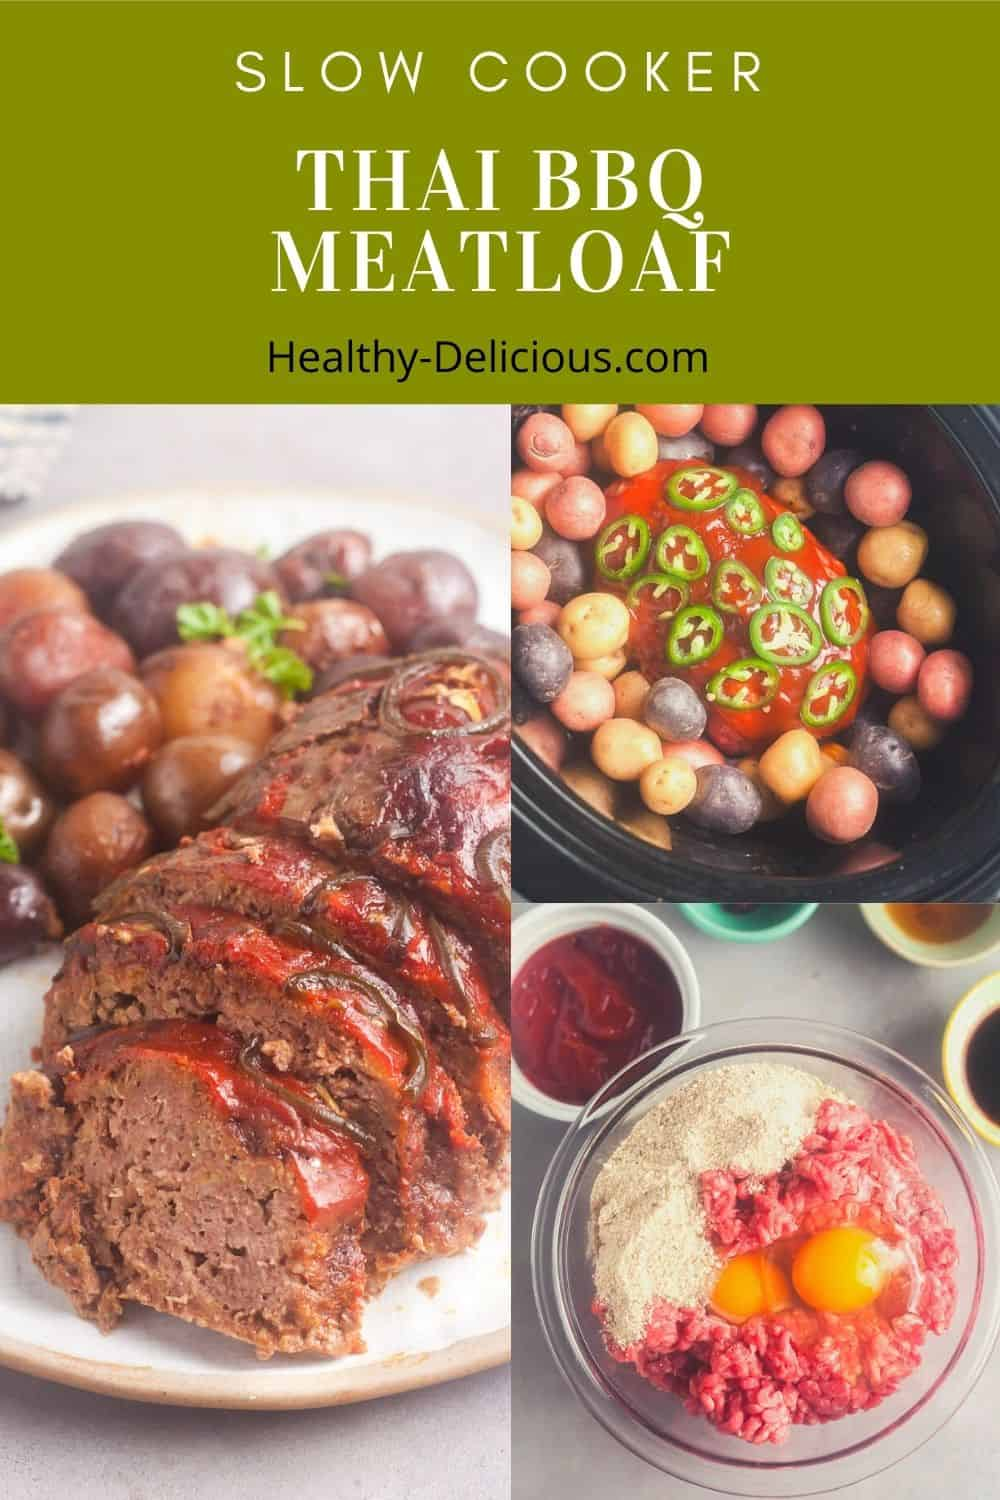 This slow cooker meatloaf and potatoes recipe is glazed with a delicious Thai-inspired barbecue sauce that's perfectly tangy and just a little bit spicy. Just one bite will leave you craving more. The leftovers are even better the next day, so this recipe is perfect for meal prep! via @HealthyDelish